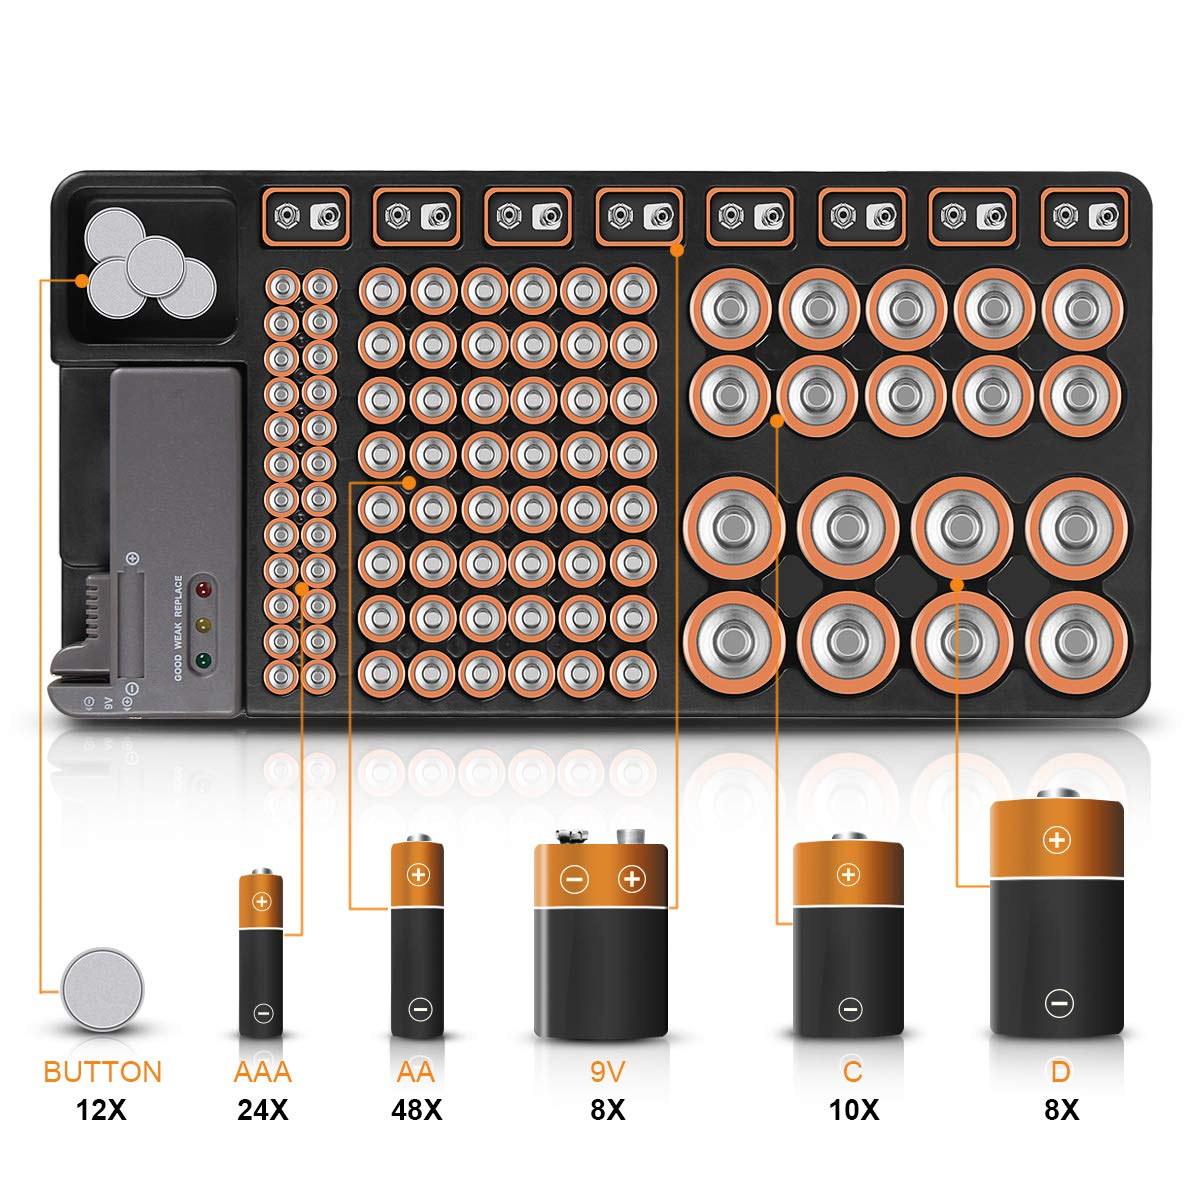 Battery Organizer Storage Case with No Lid Snap, Portable Battery Tester, Just the Right Size Slot with Wall-mounted Design,Holds 110 Batteries Various Sizes for AAA, AA, 9V, C, D and Butt by TC Camel